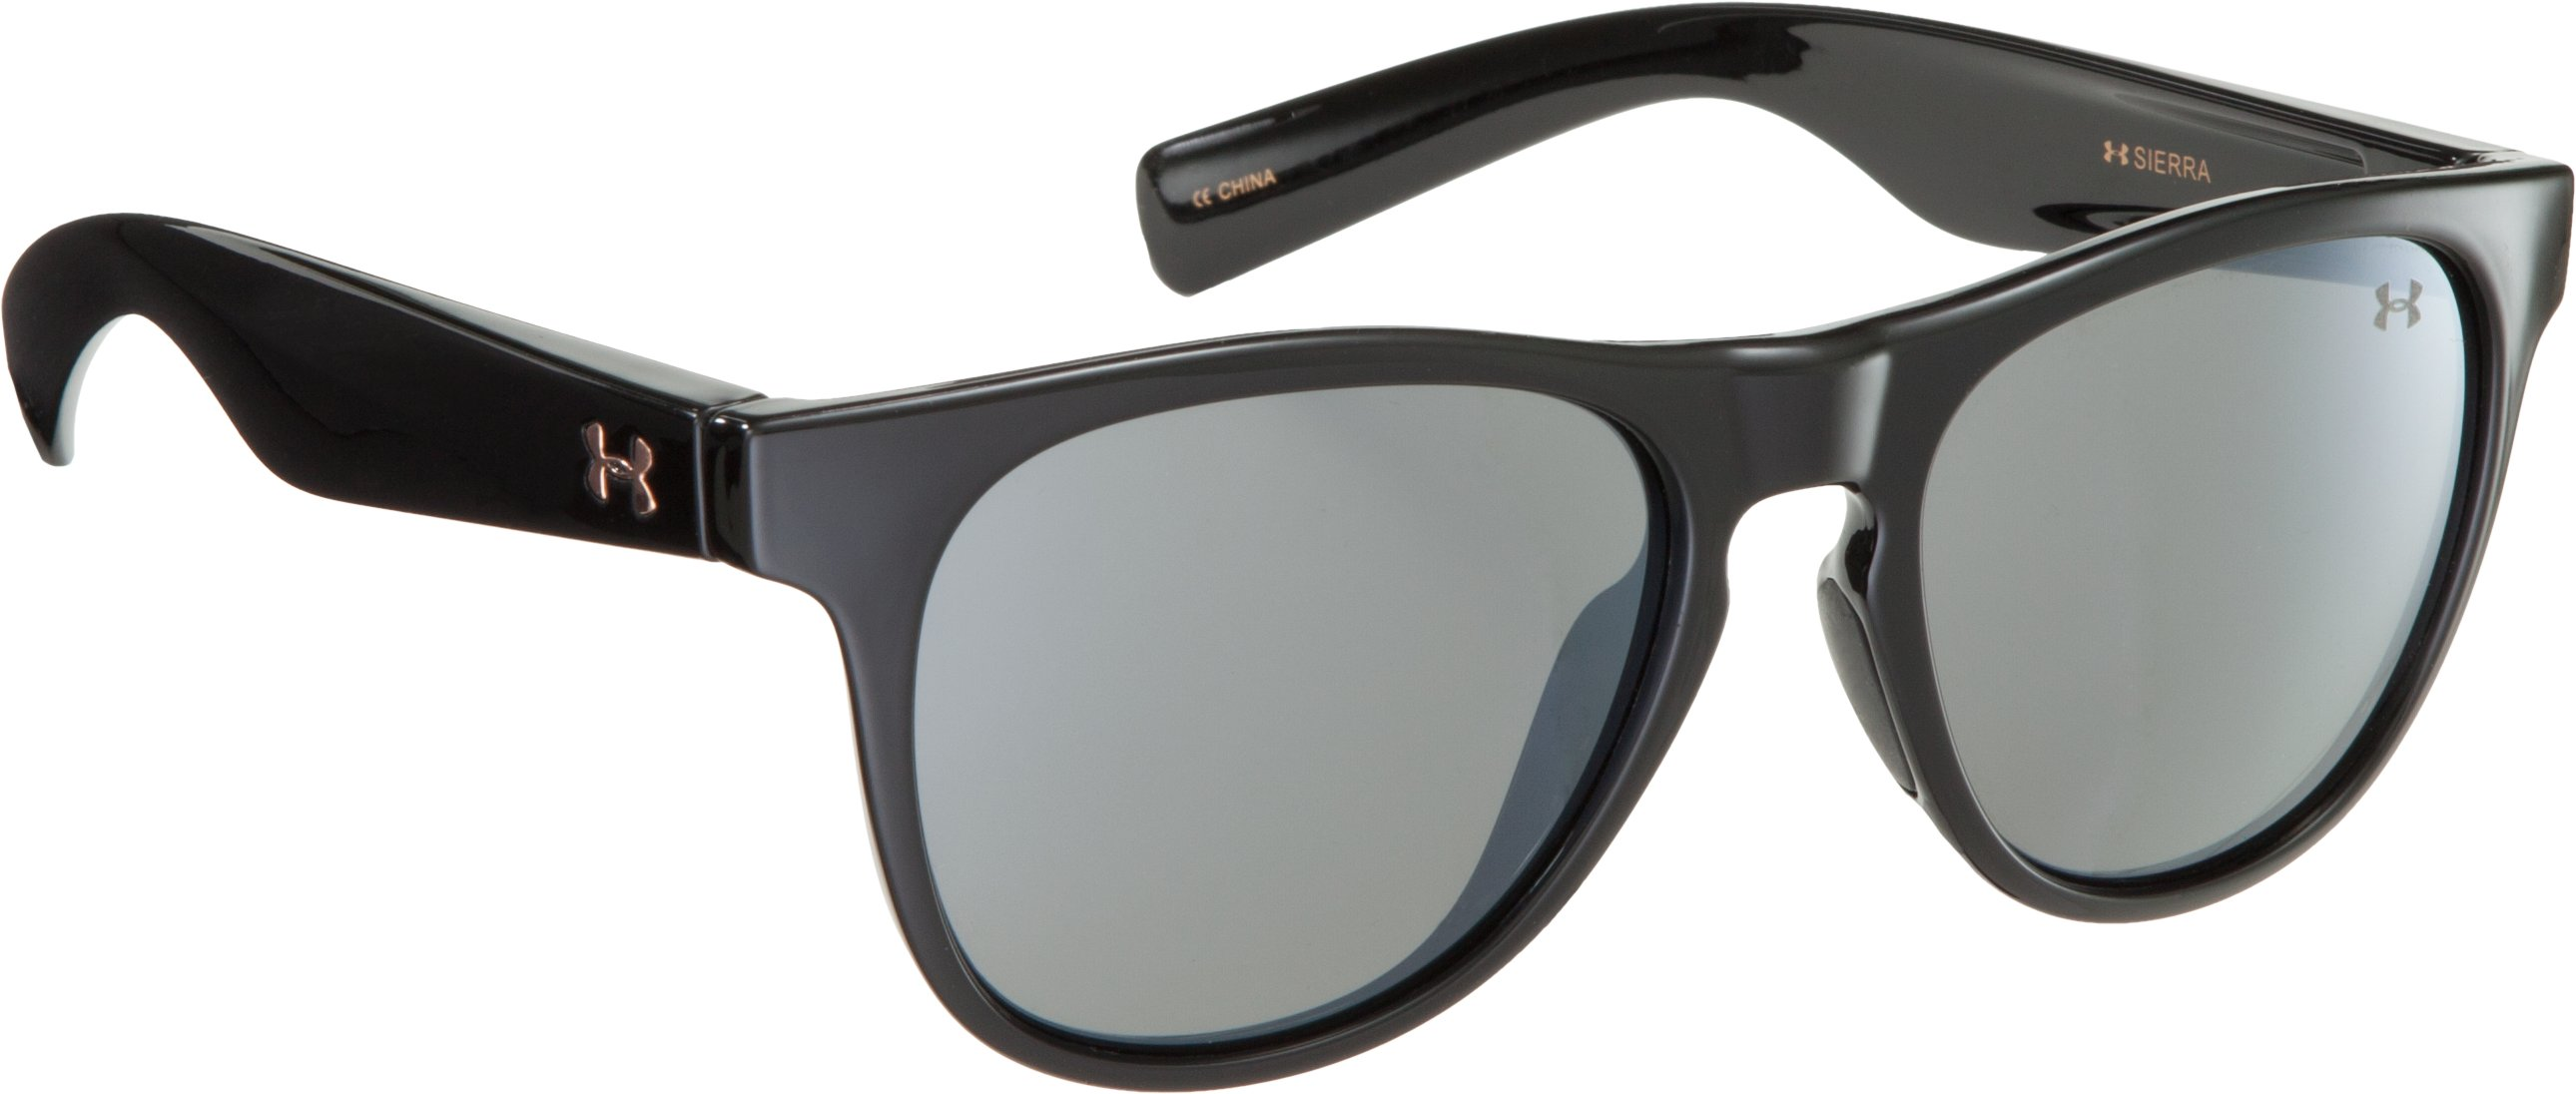 Women's UA Sierra Sunglasses, Shiny Black